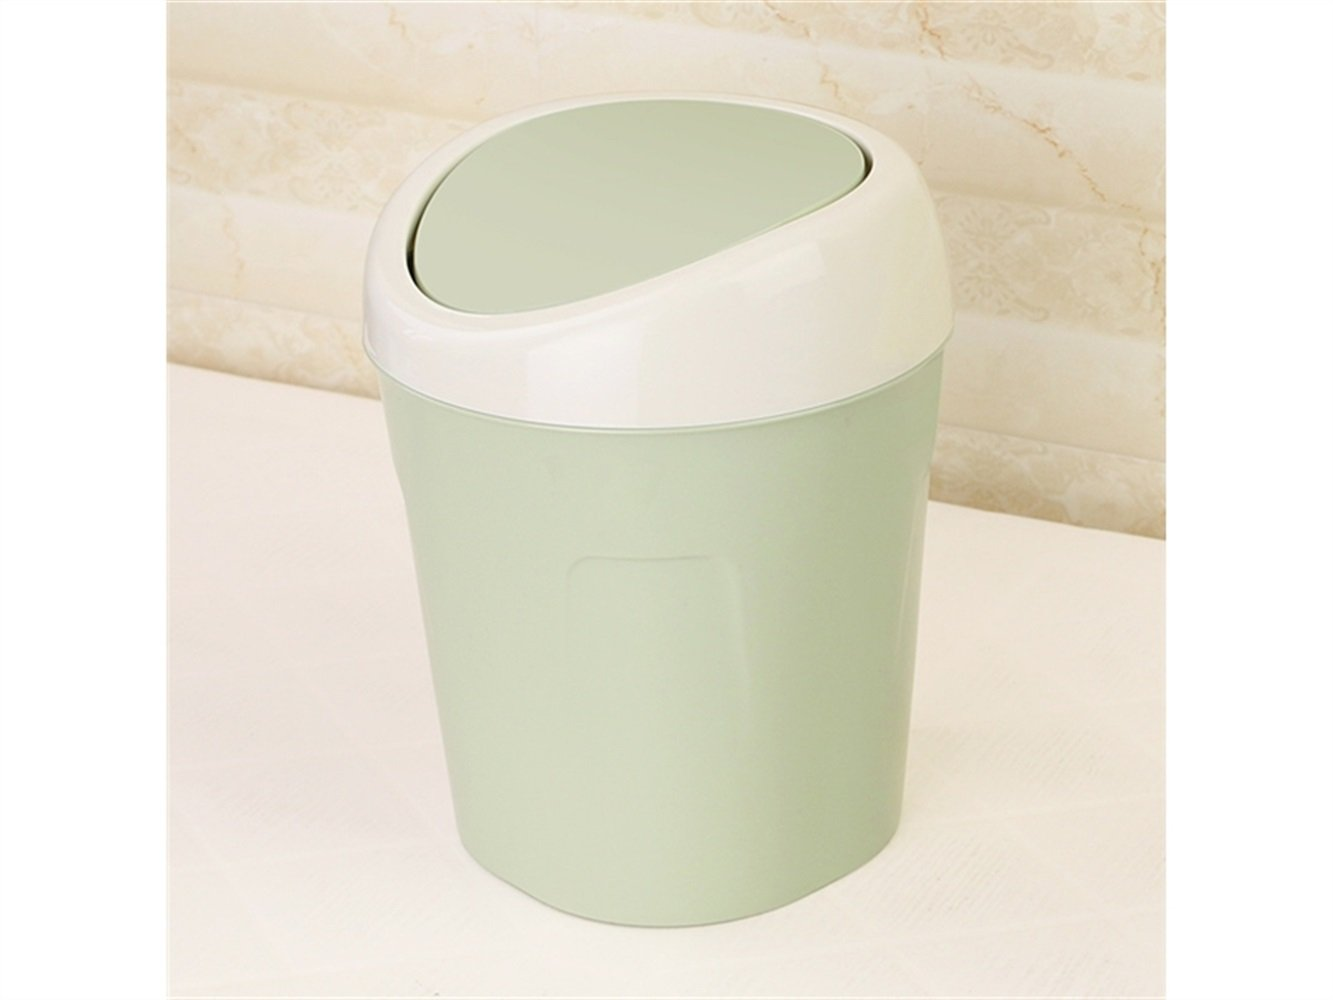 JwlqAy Countertop Garbage Trash Storage Flip Cover Rubbish Can Lid (Green)